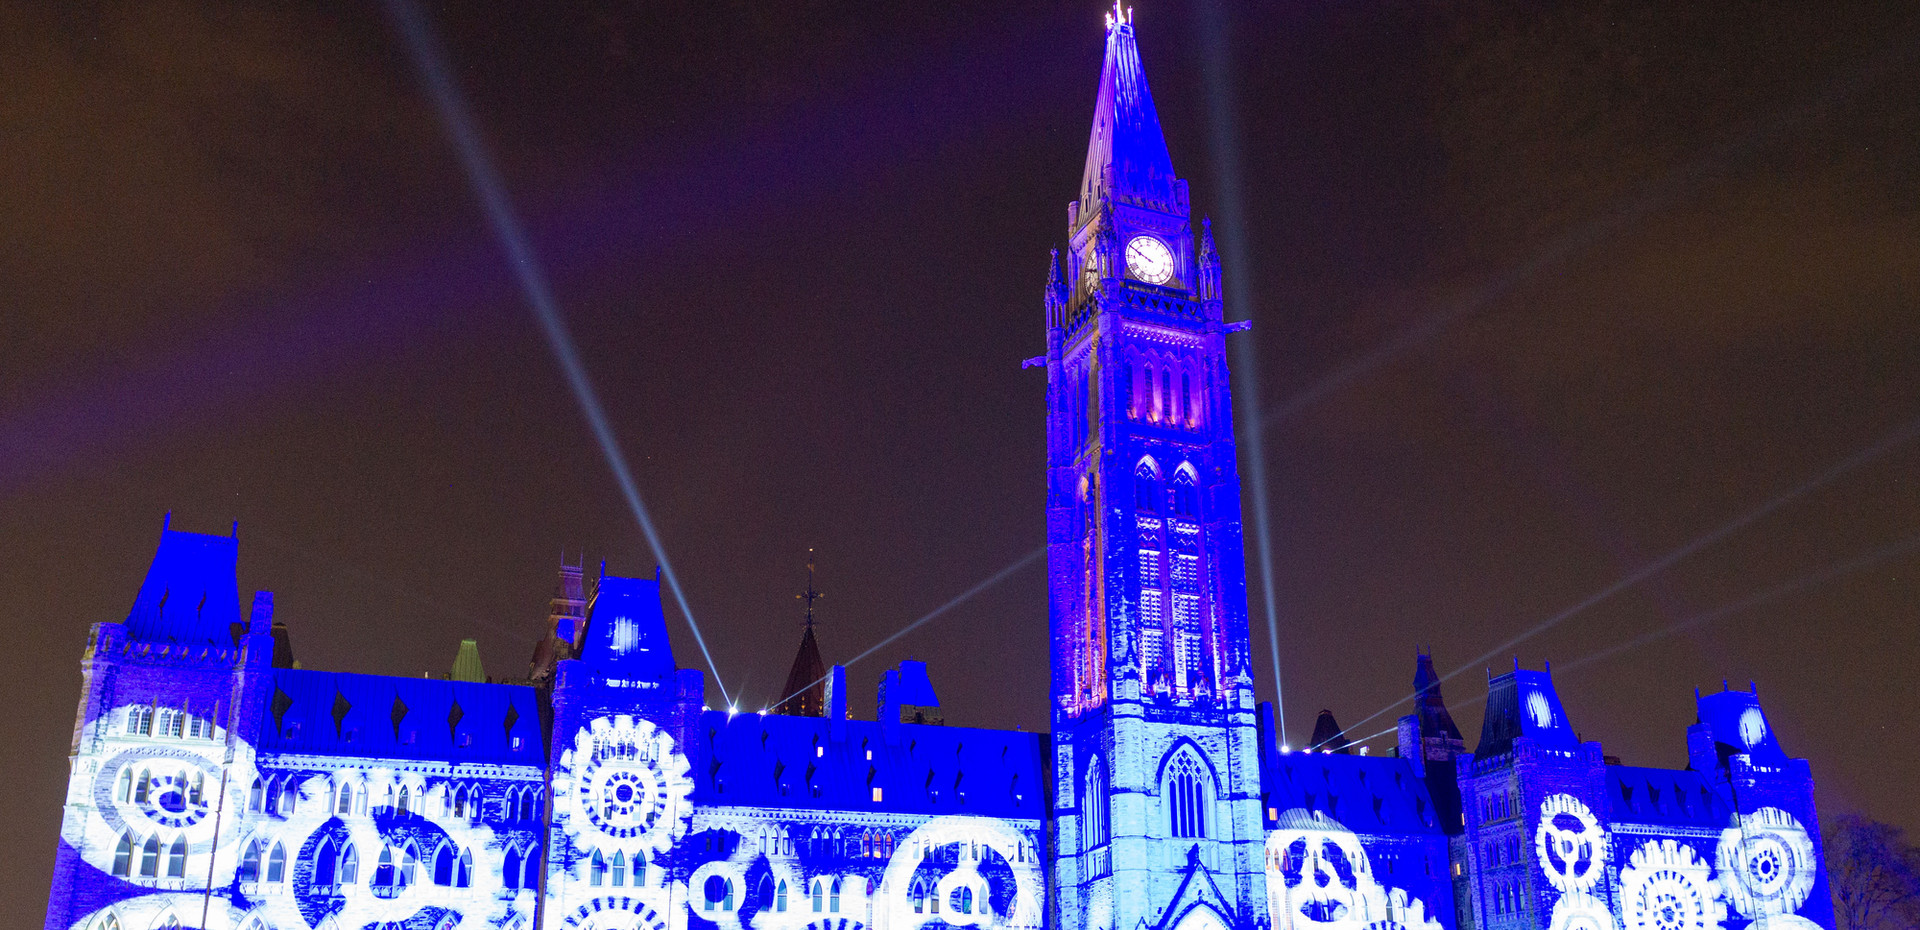 Take in the historical light show at Parliament Hill in the heart of summer